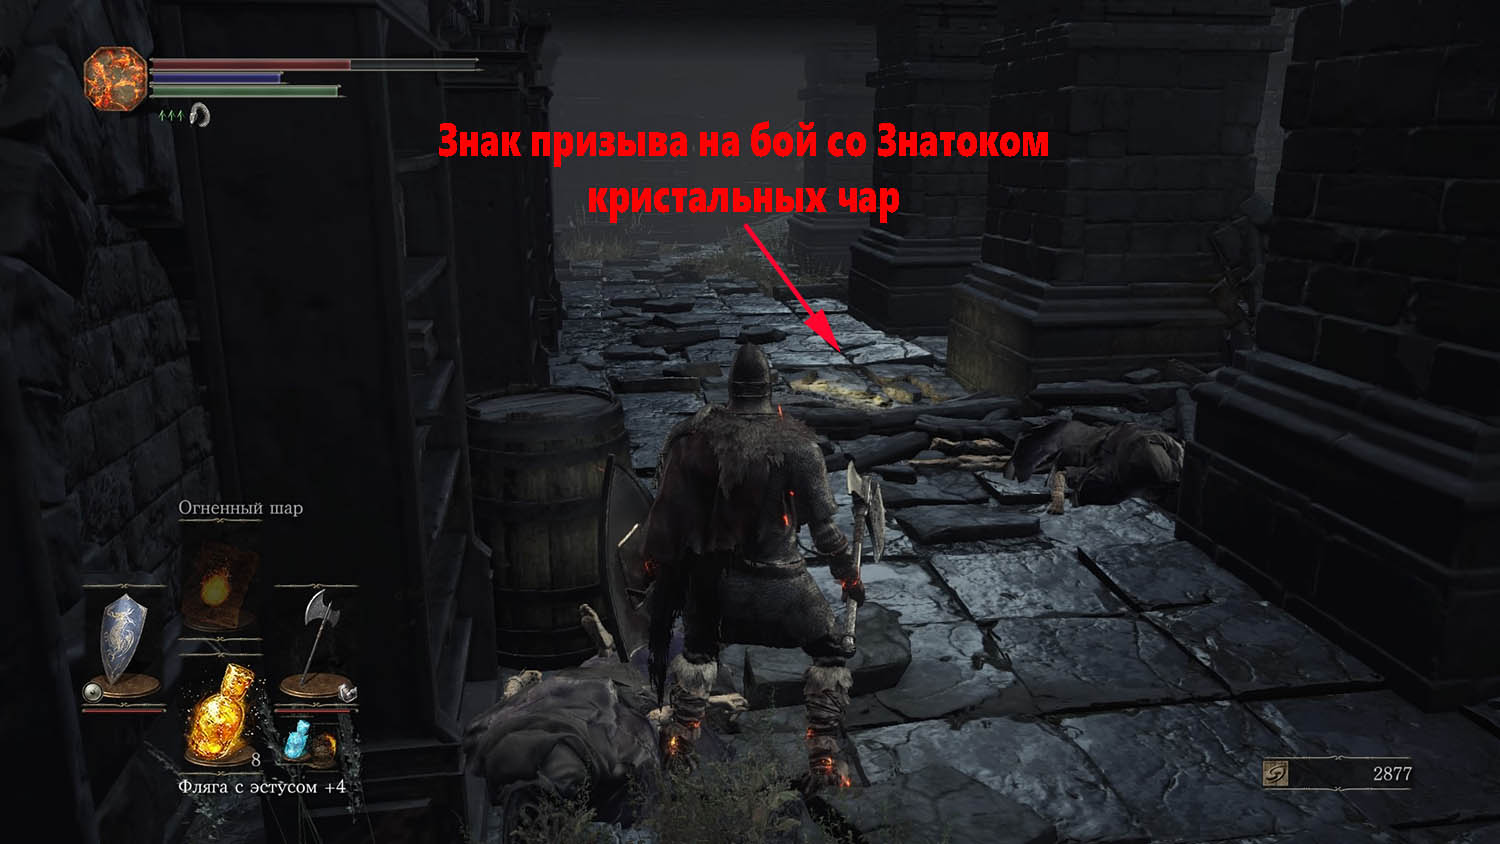 From Software Dark Souls 3 Page 246 Rpgcodex Itz Happening But if a lost soul should (accepting) ohh. rpg codex